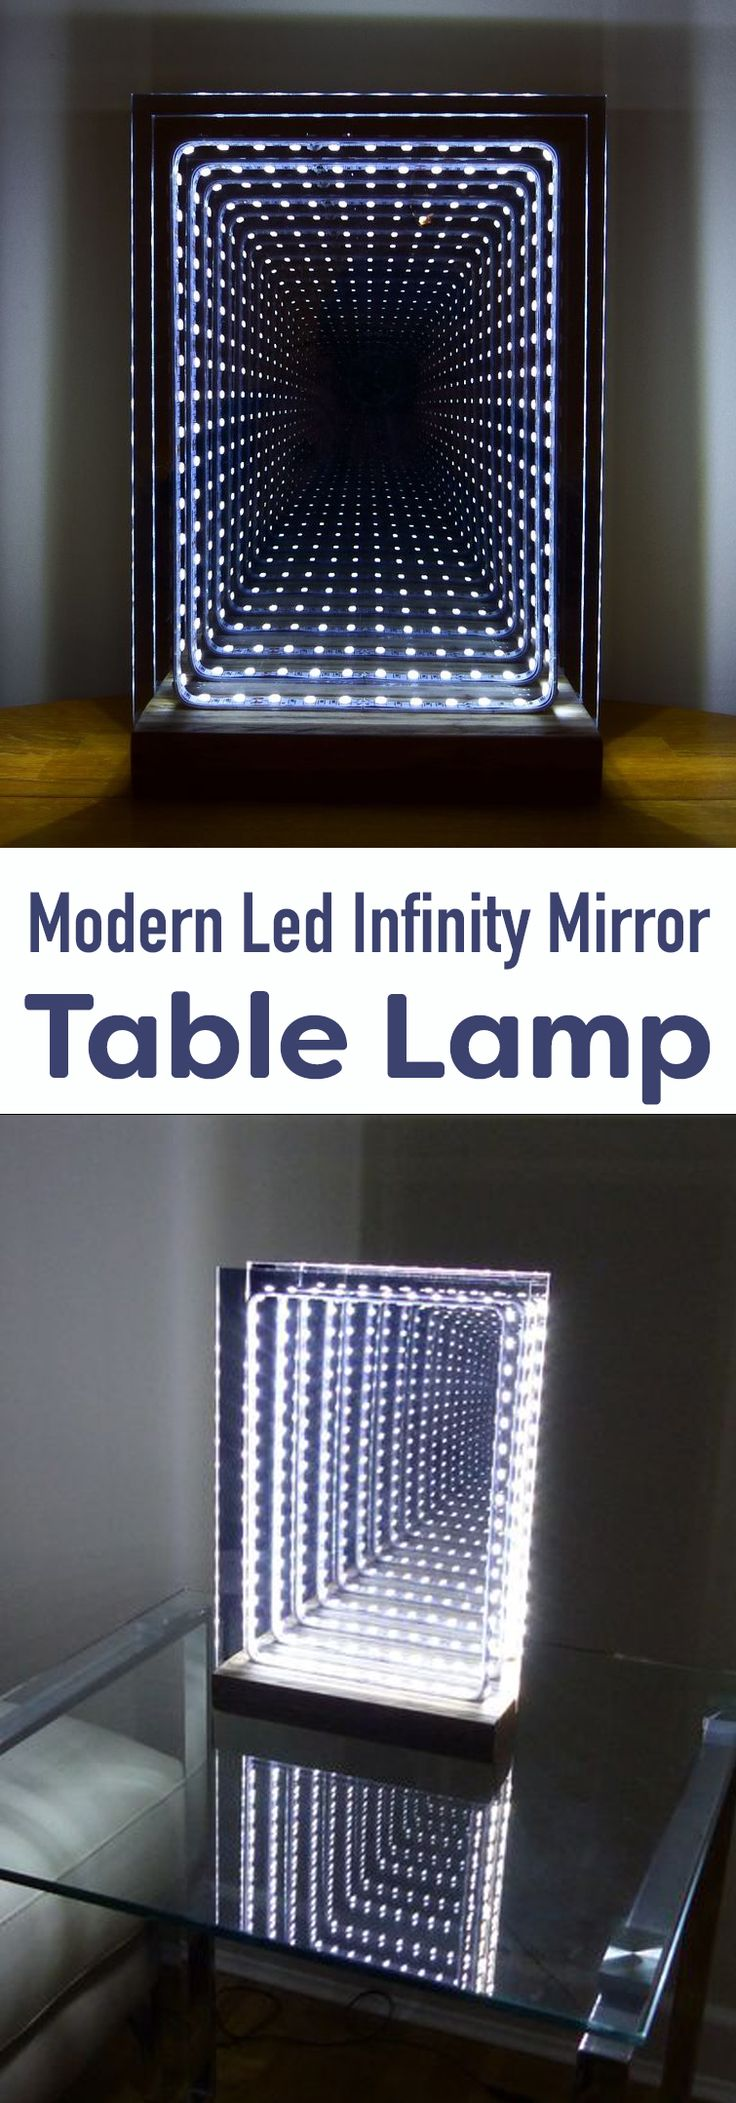 How to make a modern styled infinity mirror, which also works really well as a table lamp and looks fantastic.